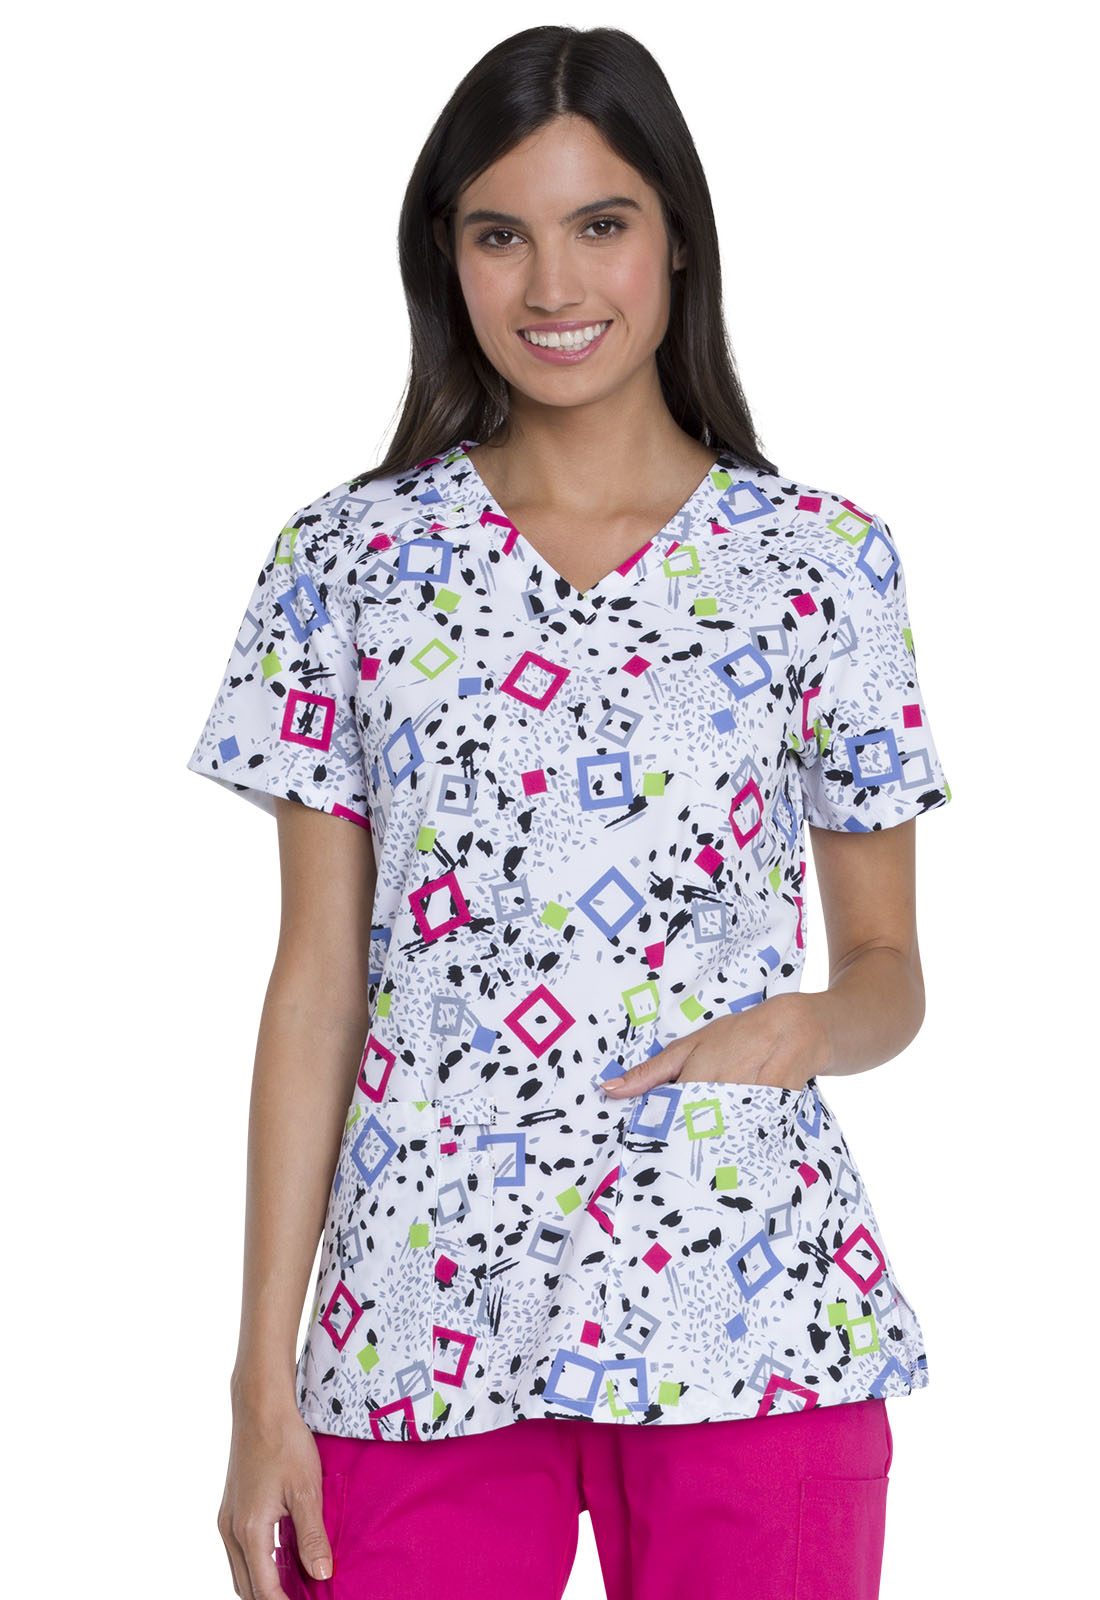 2b1e077c Dickies V-Neck Top (Regular) in Squares And Spots from Cherokee Scrubs at  Cherokee 4 Less